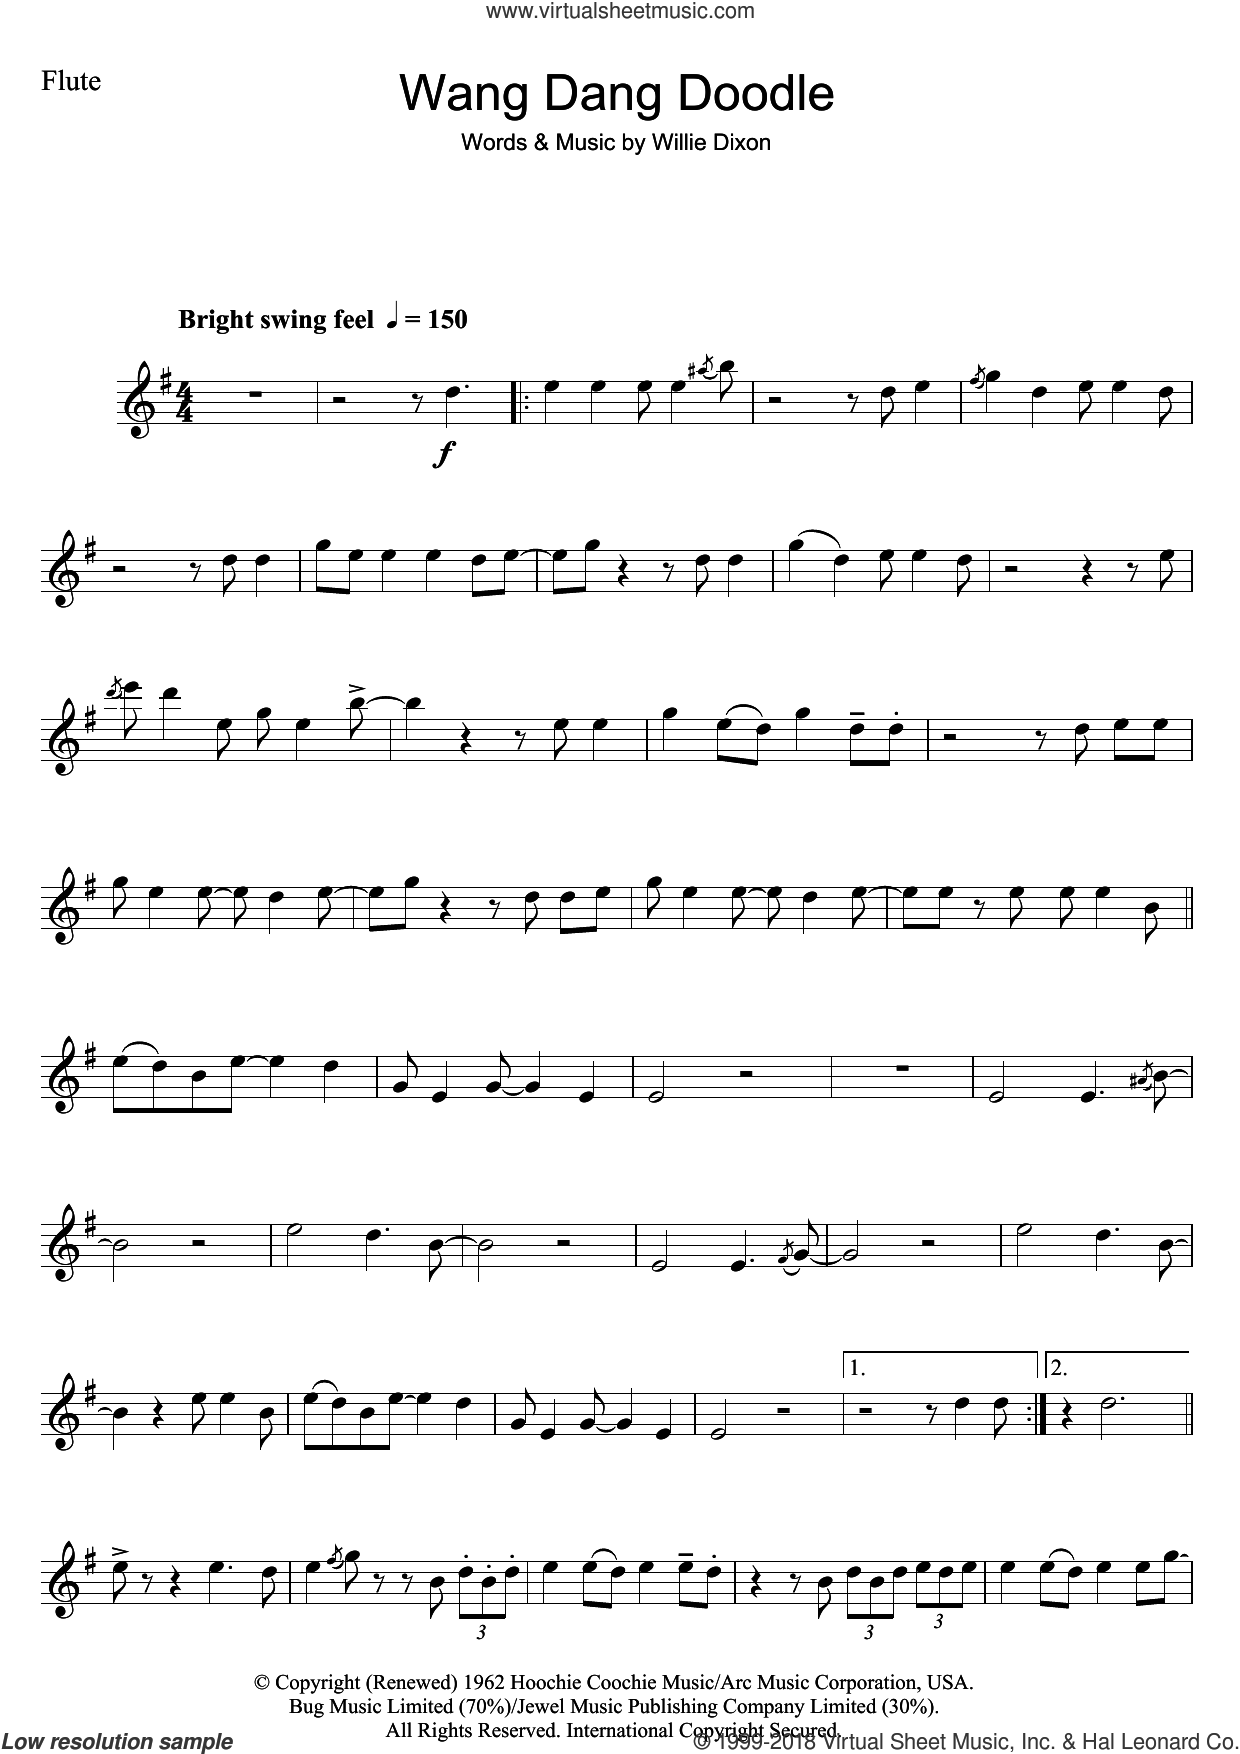 Wang Dang Doodle sheet music for flute solo by Koko Taylor and Willie Dixon. Score Image Preview.